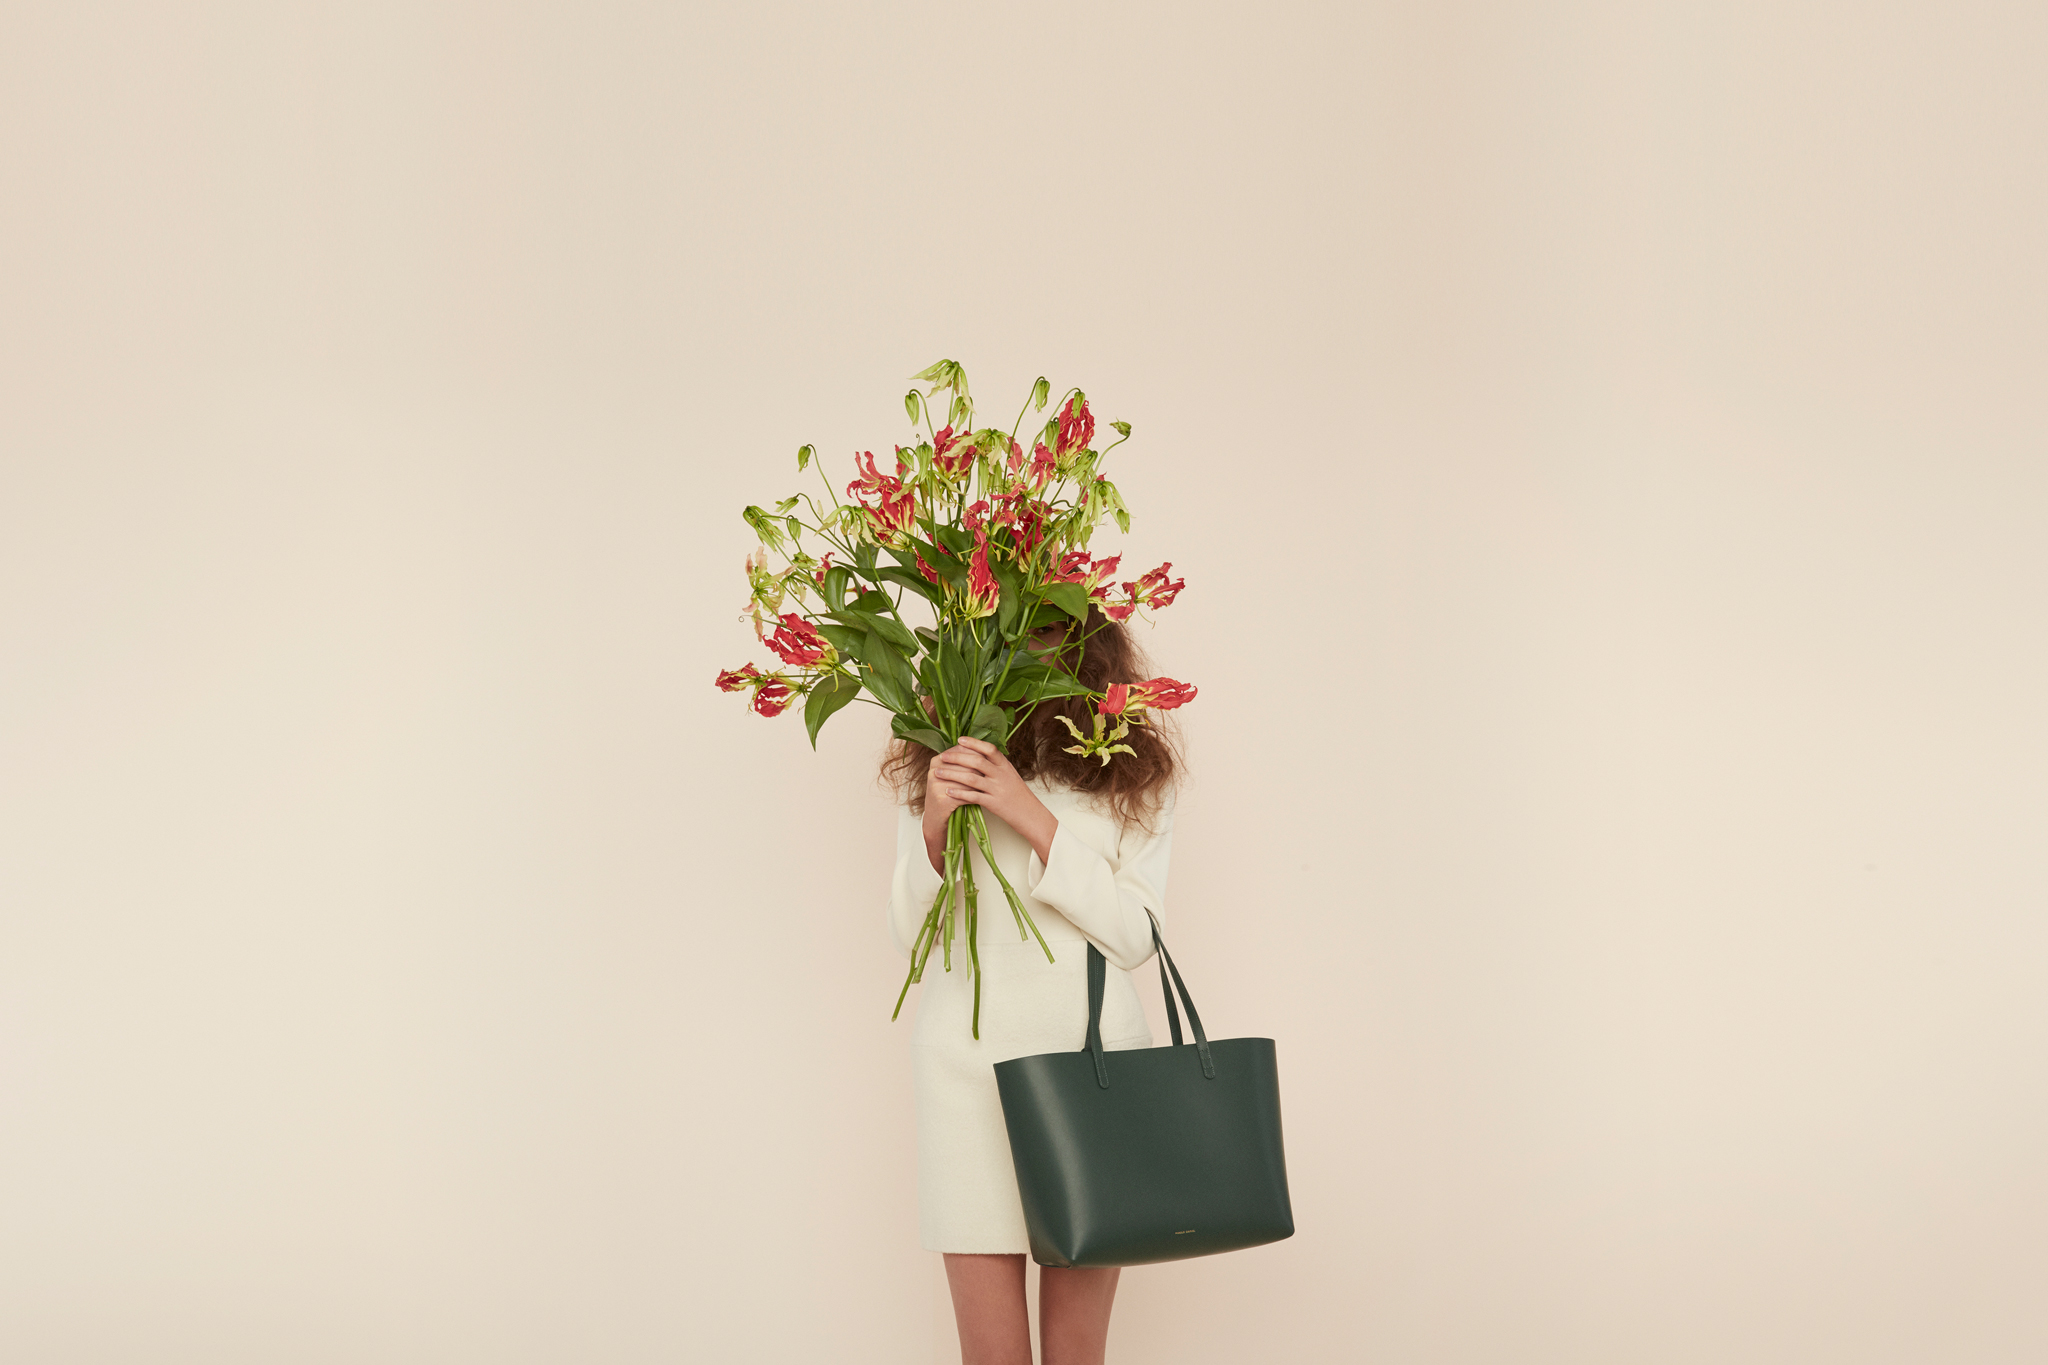 MG-AW15-5_MANSUR-GAVRIEL-ANTI-IT-BAG_MANSUR-GAVRIEL-THE-LADY-BAG_MANSUR-GAVRIEL-THE-CROSSBODY_MANSUR-GAVRIEL